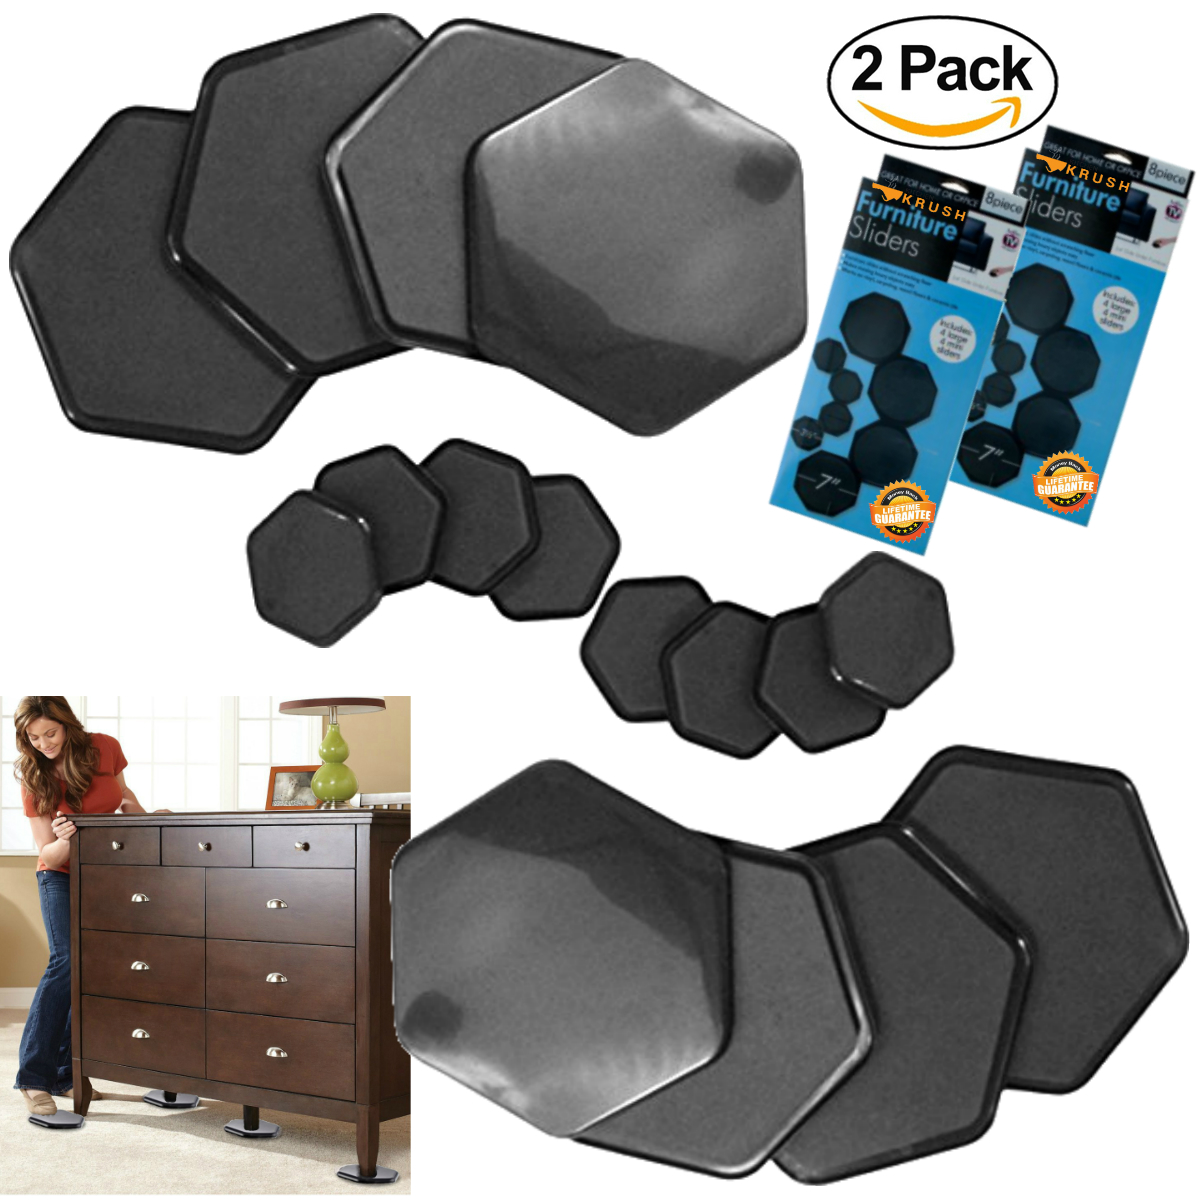 Furniture Pads And Sliders For Moving 16 Pc Furniture Feet